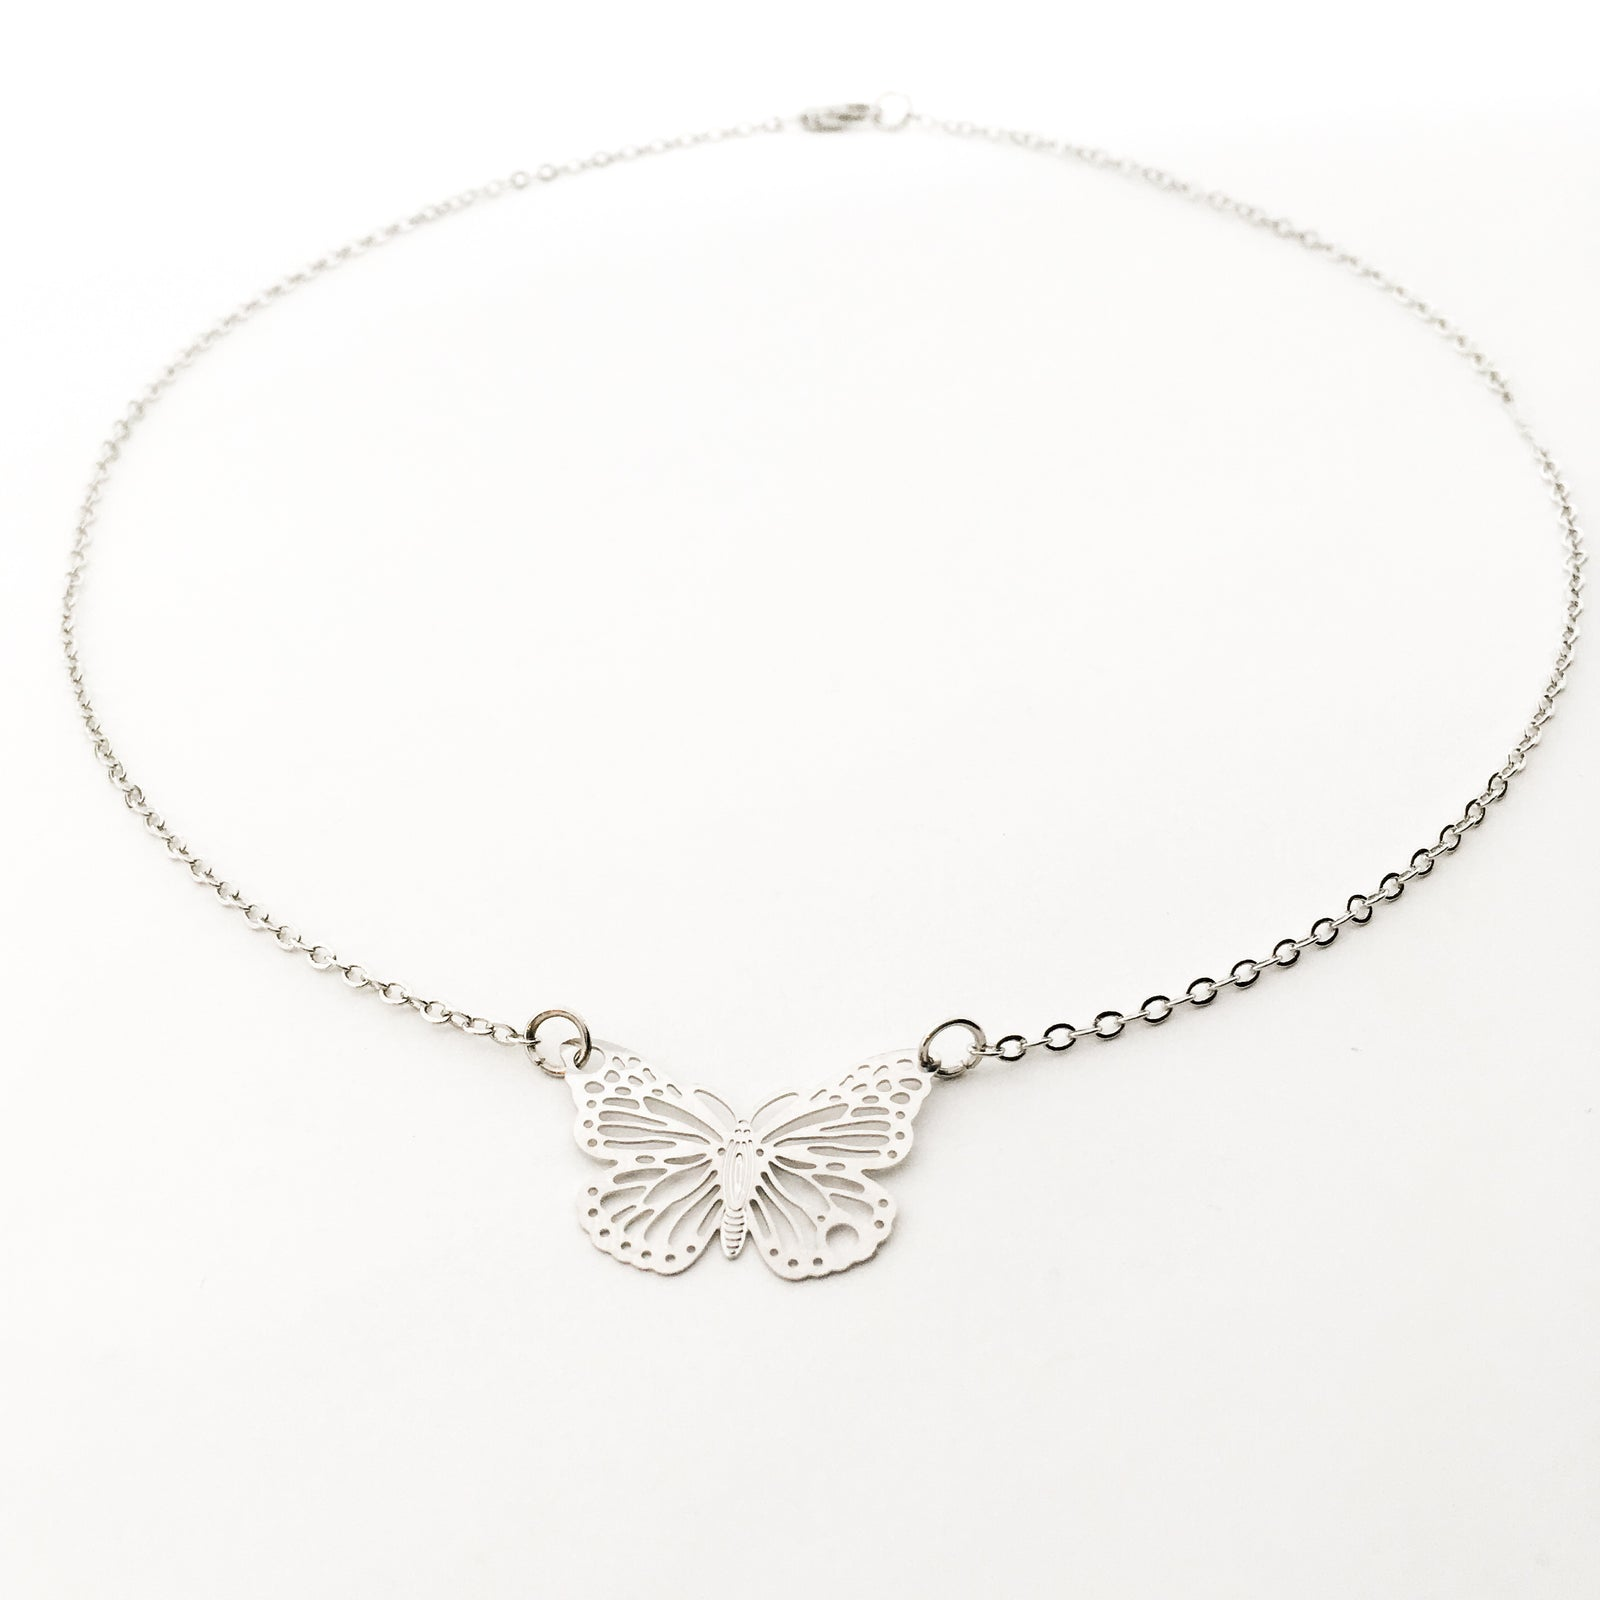 DAINTY BUTTERFLY NECKLACE | SILVER